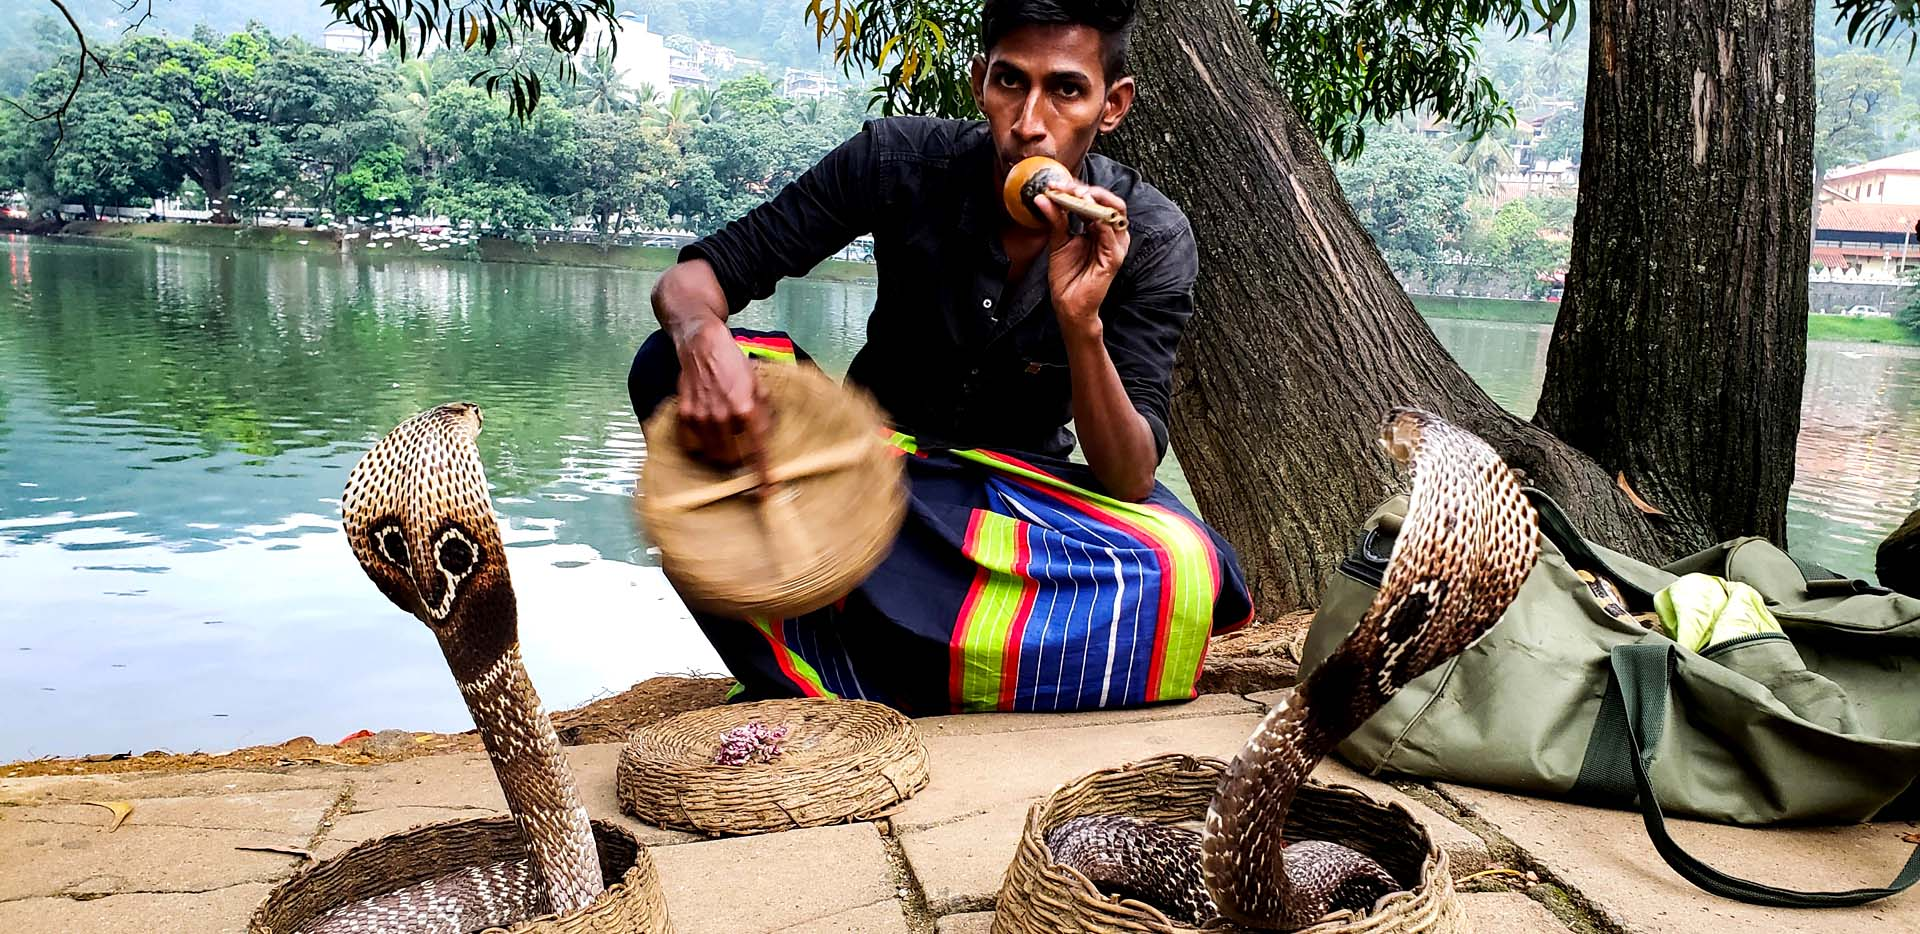 Snake Charmer with Cobras